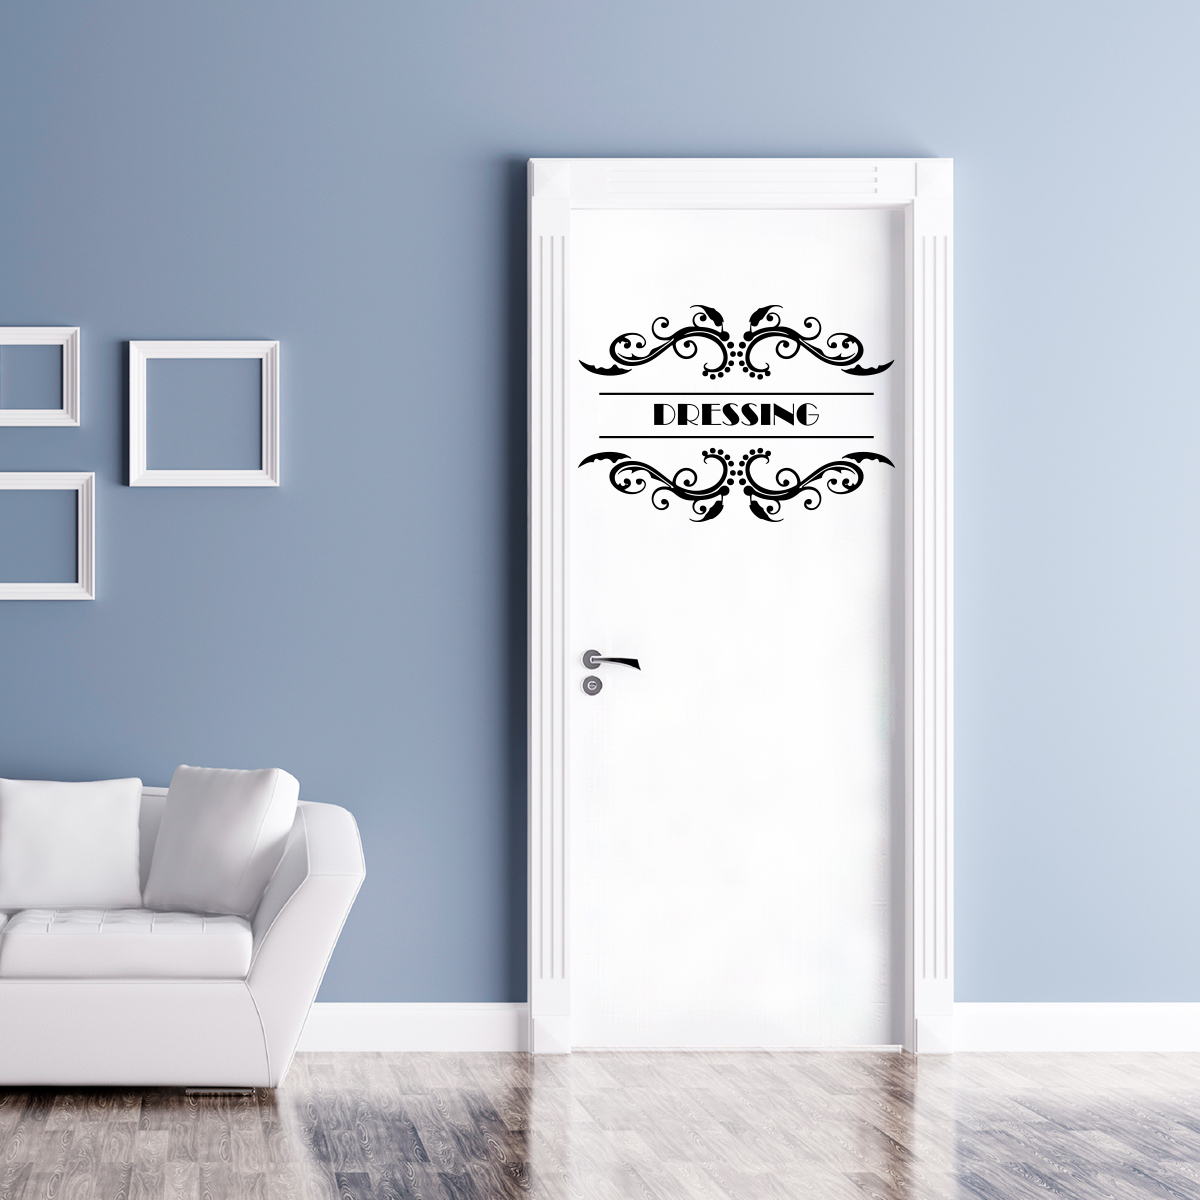 sticker porte dressing orn stickers citations chambre ambiance sticker. Black Bedroom Furniture Sets. Home Design Ideas